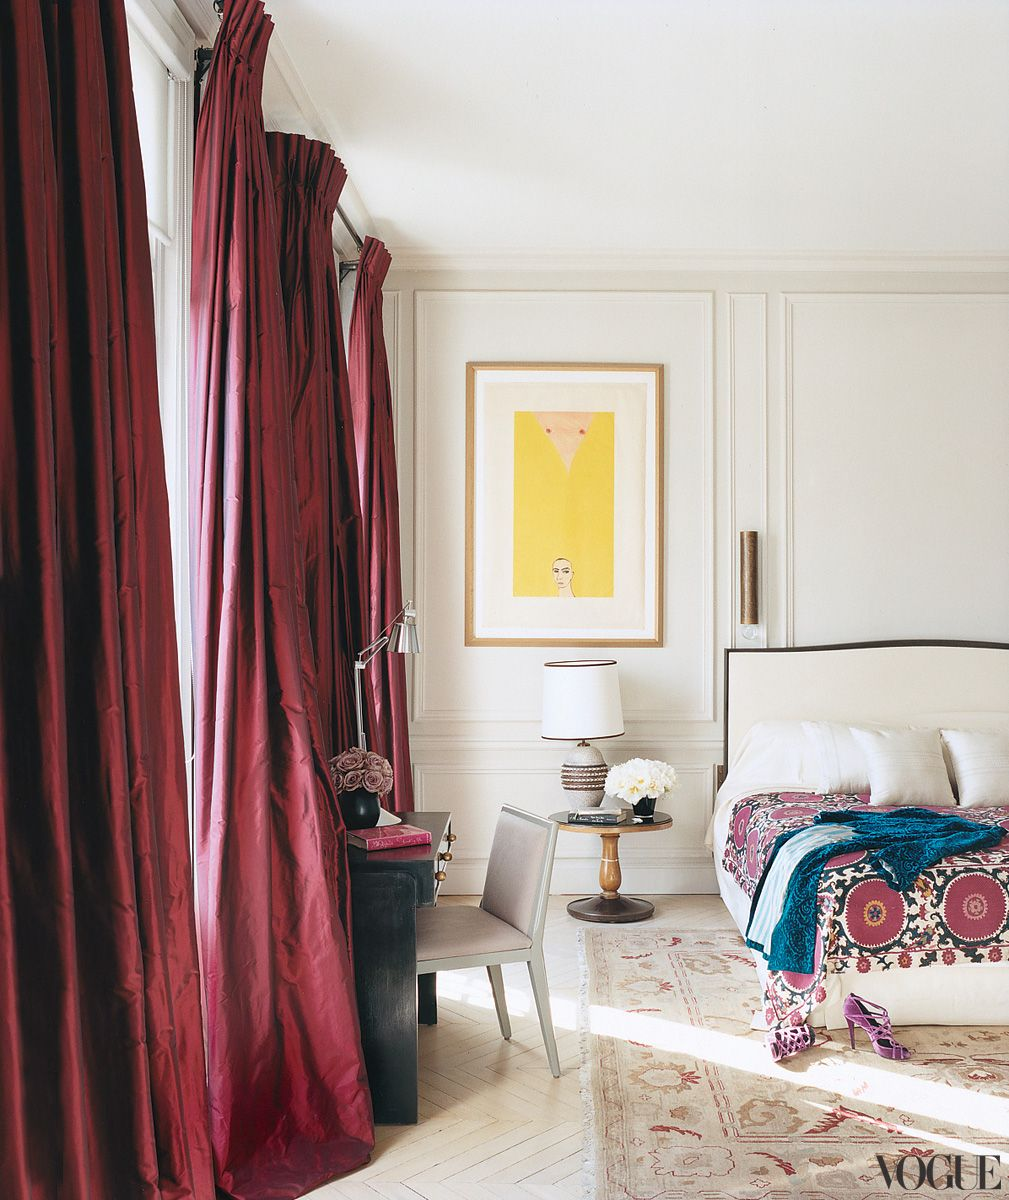 L Wren Scott And Mick Jagger S Turn Of The Century Left Bank Apartment In Paris A Guest Bedroom Includes Richly Hued Curtains Painting By Francesco